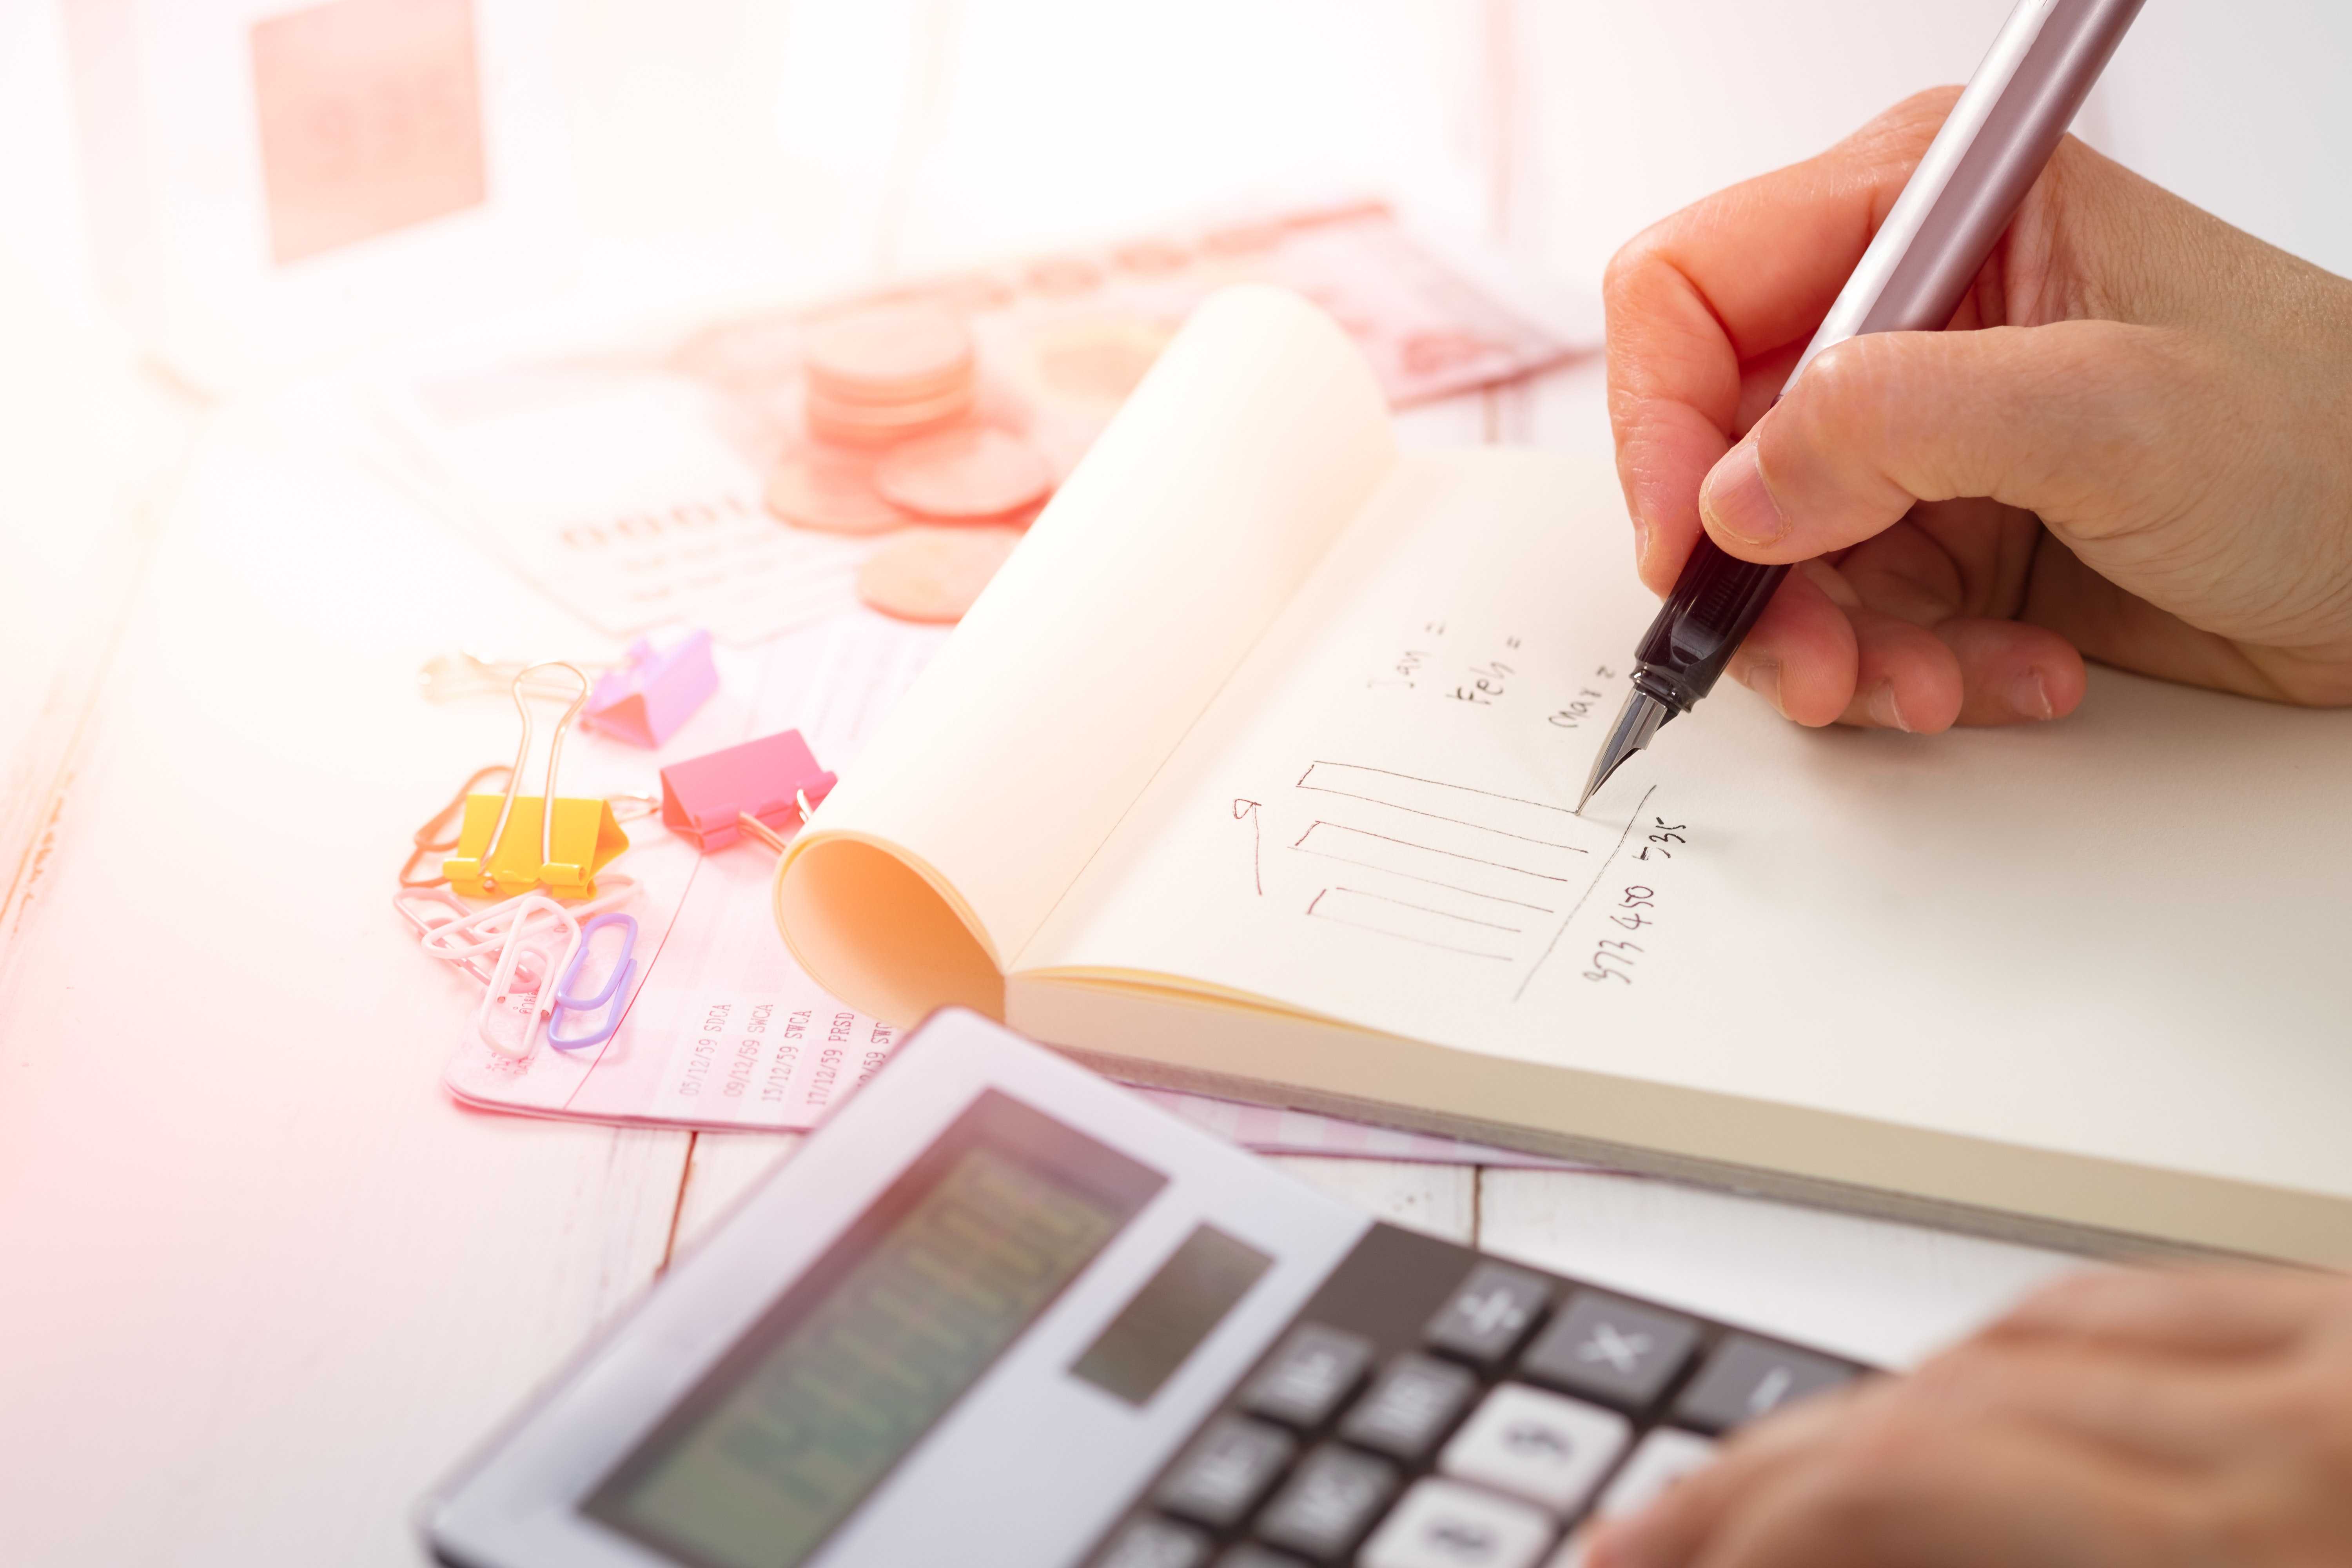 Ongoing Tax Planning and Consultation incorporating the Estate's and Beneficiary's Personal Circumstances